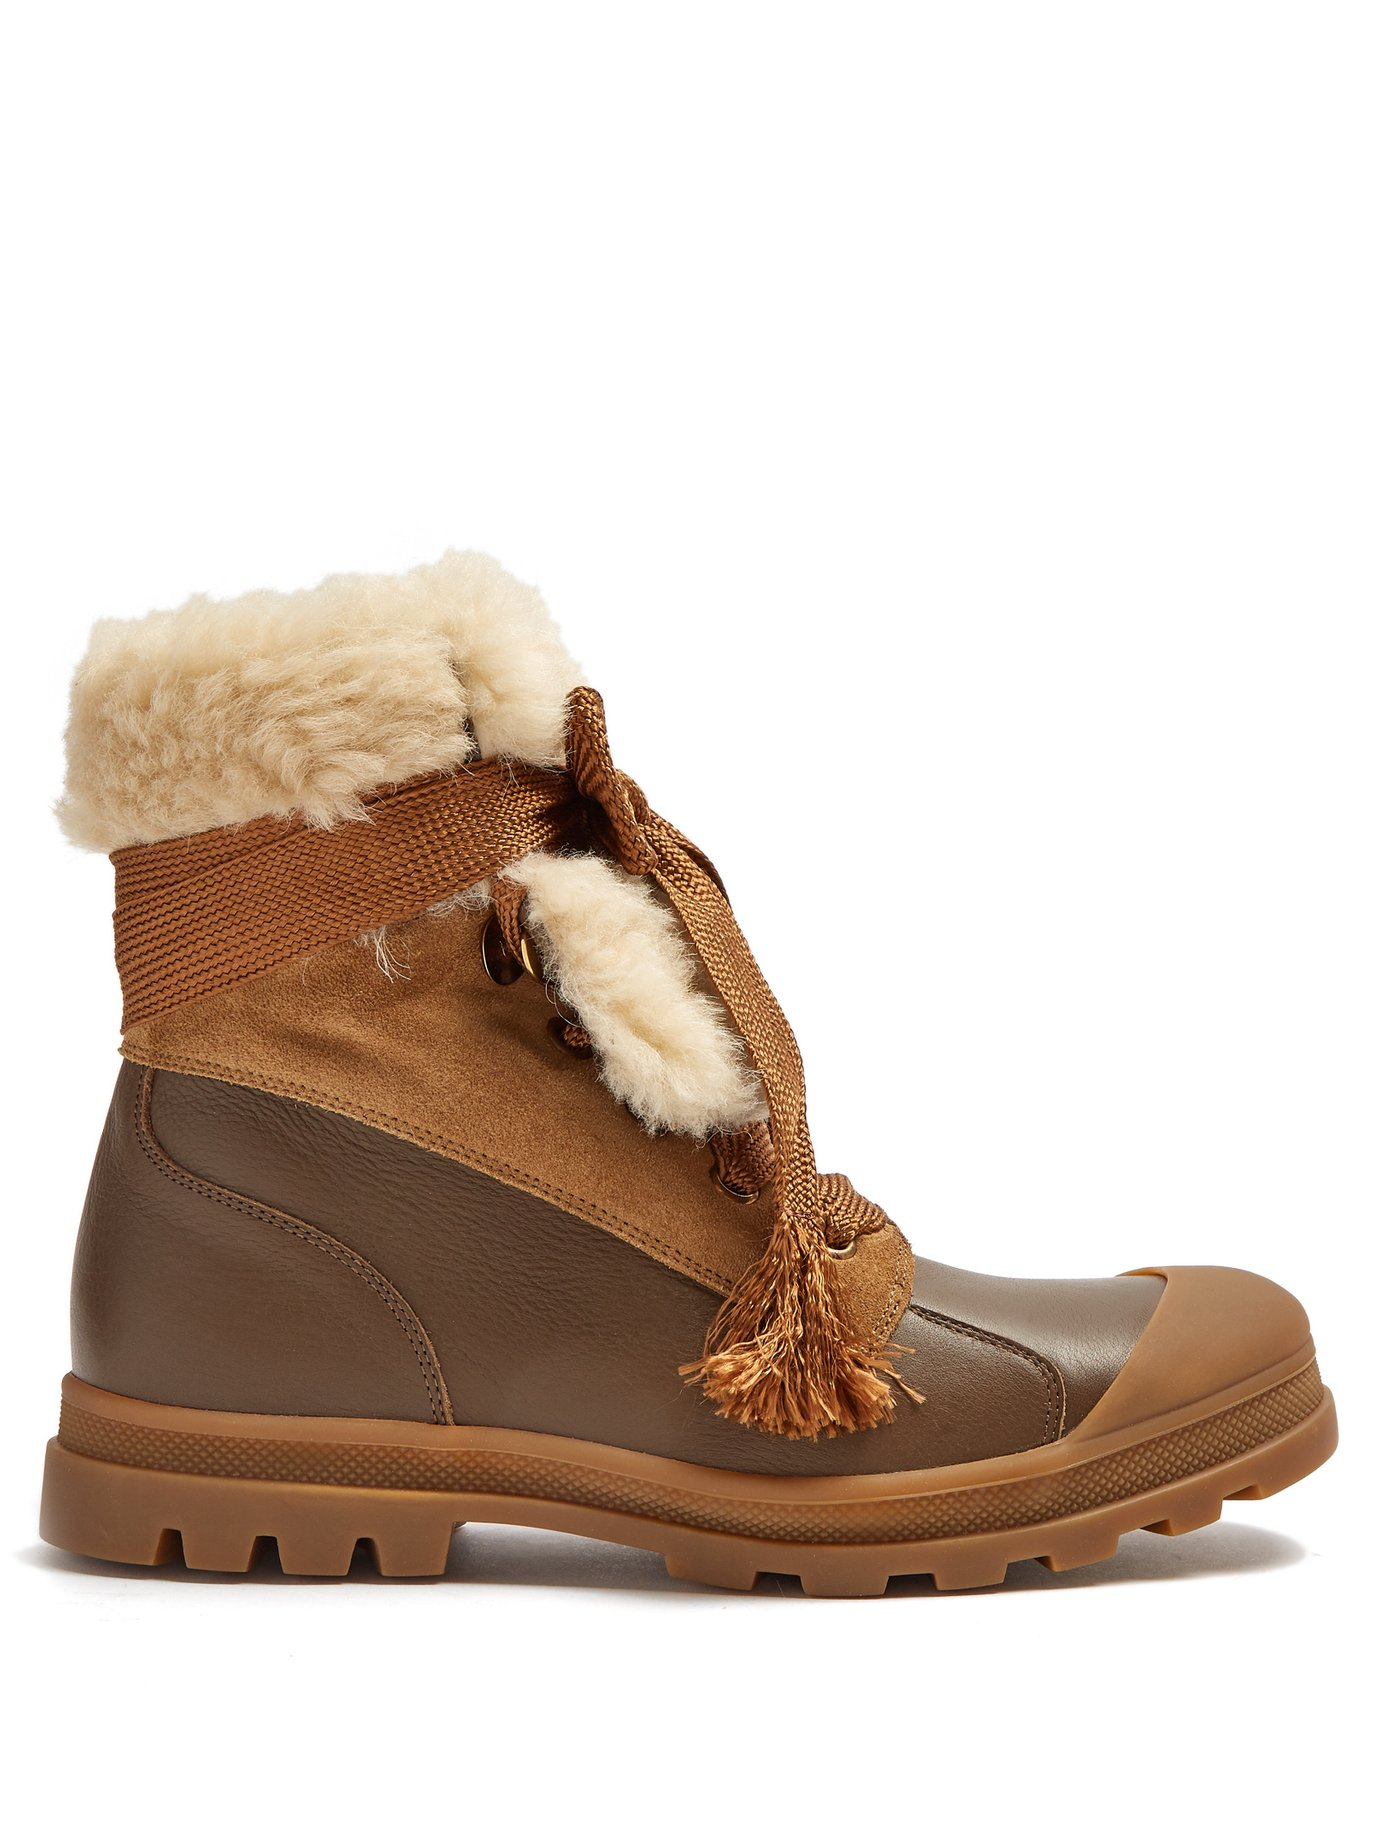 chloe parker boots - Cream shearling lining set against sepia-brown suede and ribbon ties, makes these boots romantic yet comfortable, practical and easy to wear. Equally cool with trousers, dresses and skirt. The perfect winter boot with style and ease.